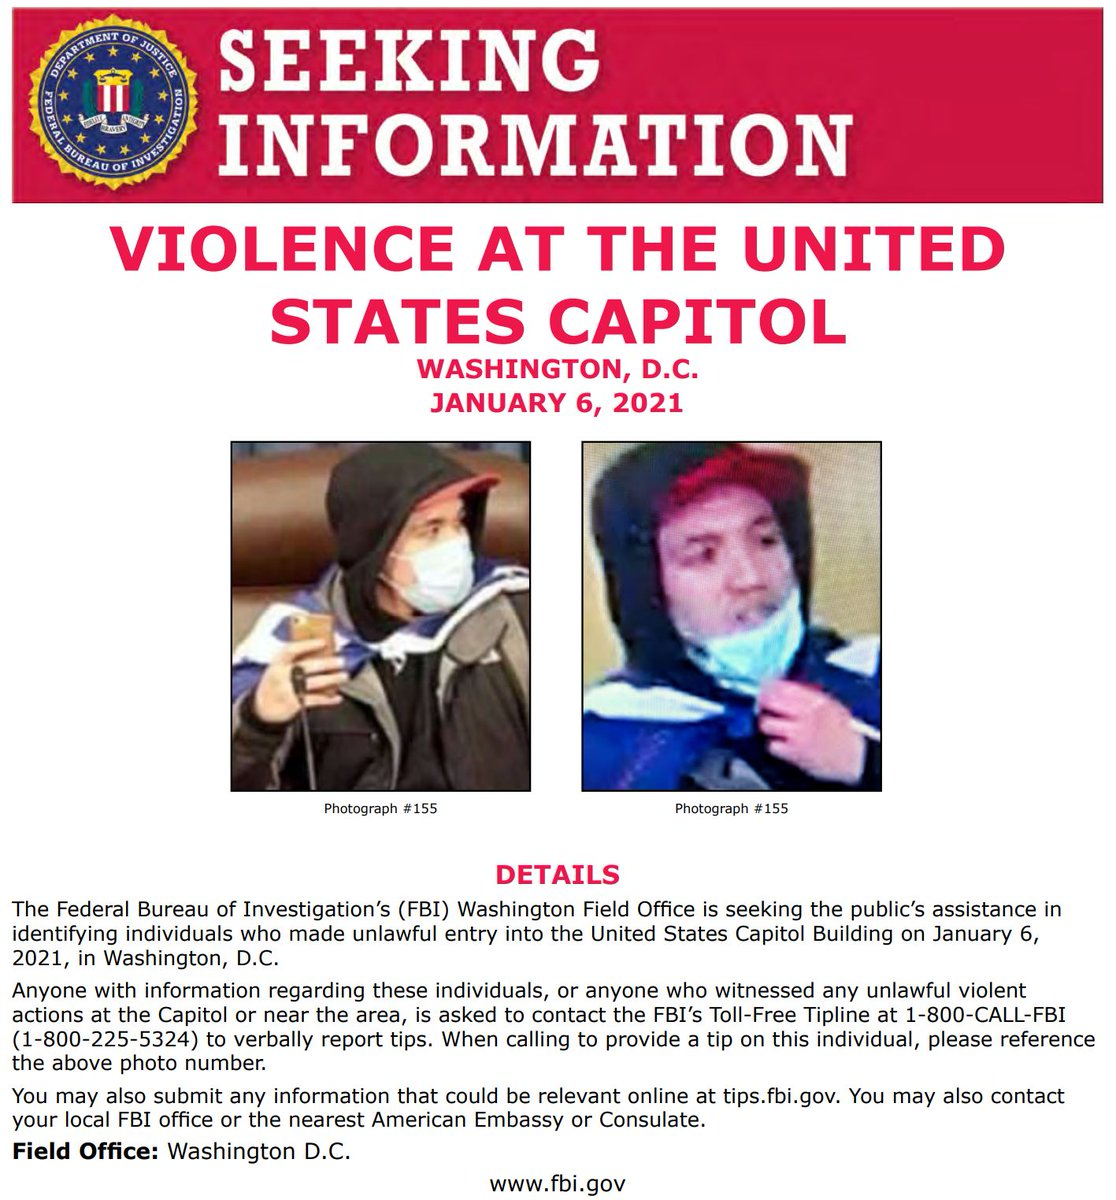 #ICYMI: #FBIWFO released 3 new Seeking Info posters w/ new images this weekend. #FBI is seeking the public's help in identifying those who made unlawful entry & assaulted officers in the Capitol on Jan 6th. If you have info, call 1800CALLFBI or submit to tips.fbi.gov.